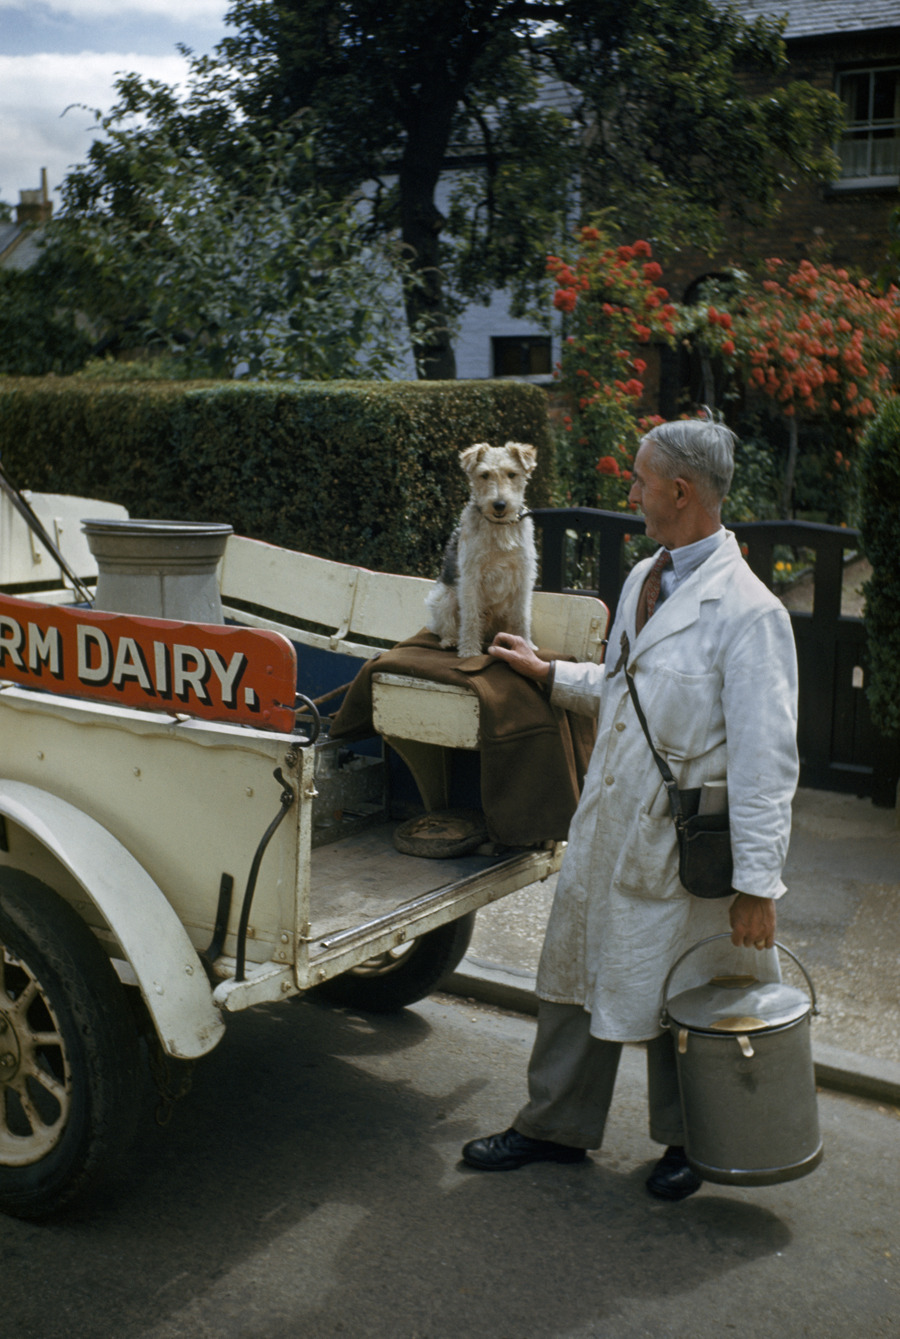 A milkman and his terrier pose at the back of a milk truck, May 1948.Photograph by Melville B. Grosvenor, National Geographic